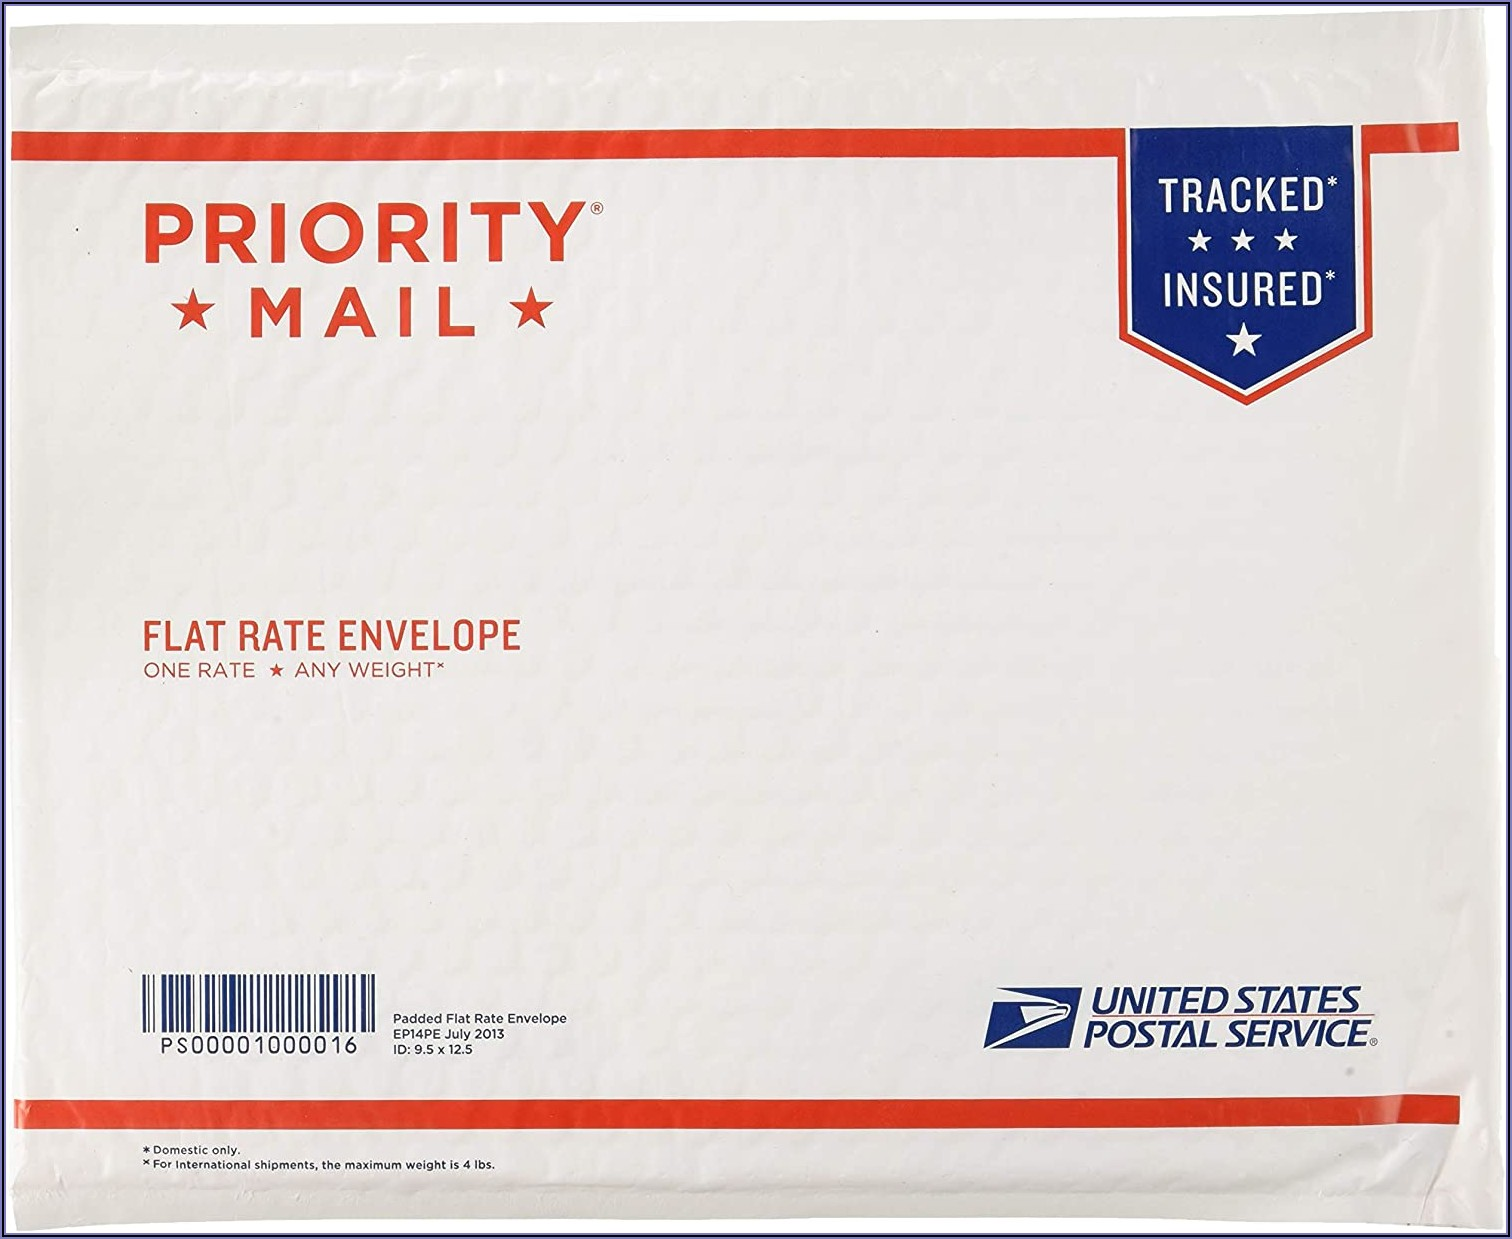 Usps Priority Mail Flat Rate Envelope Delivery Time